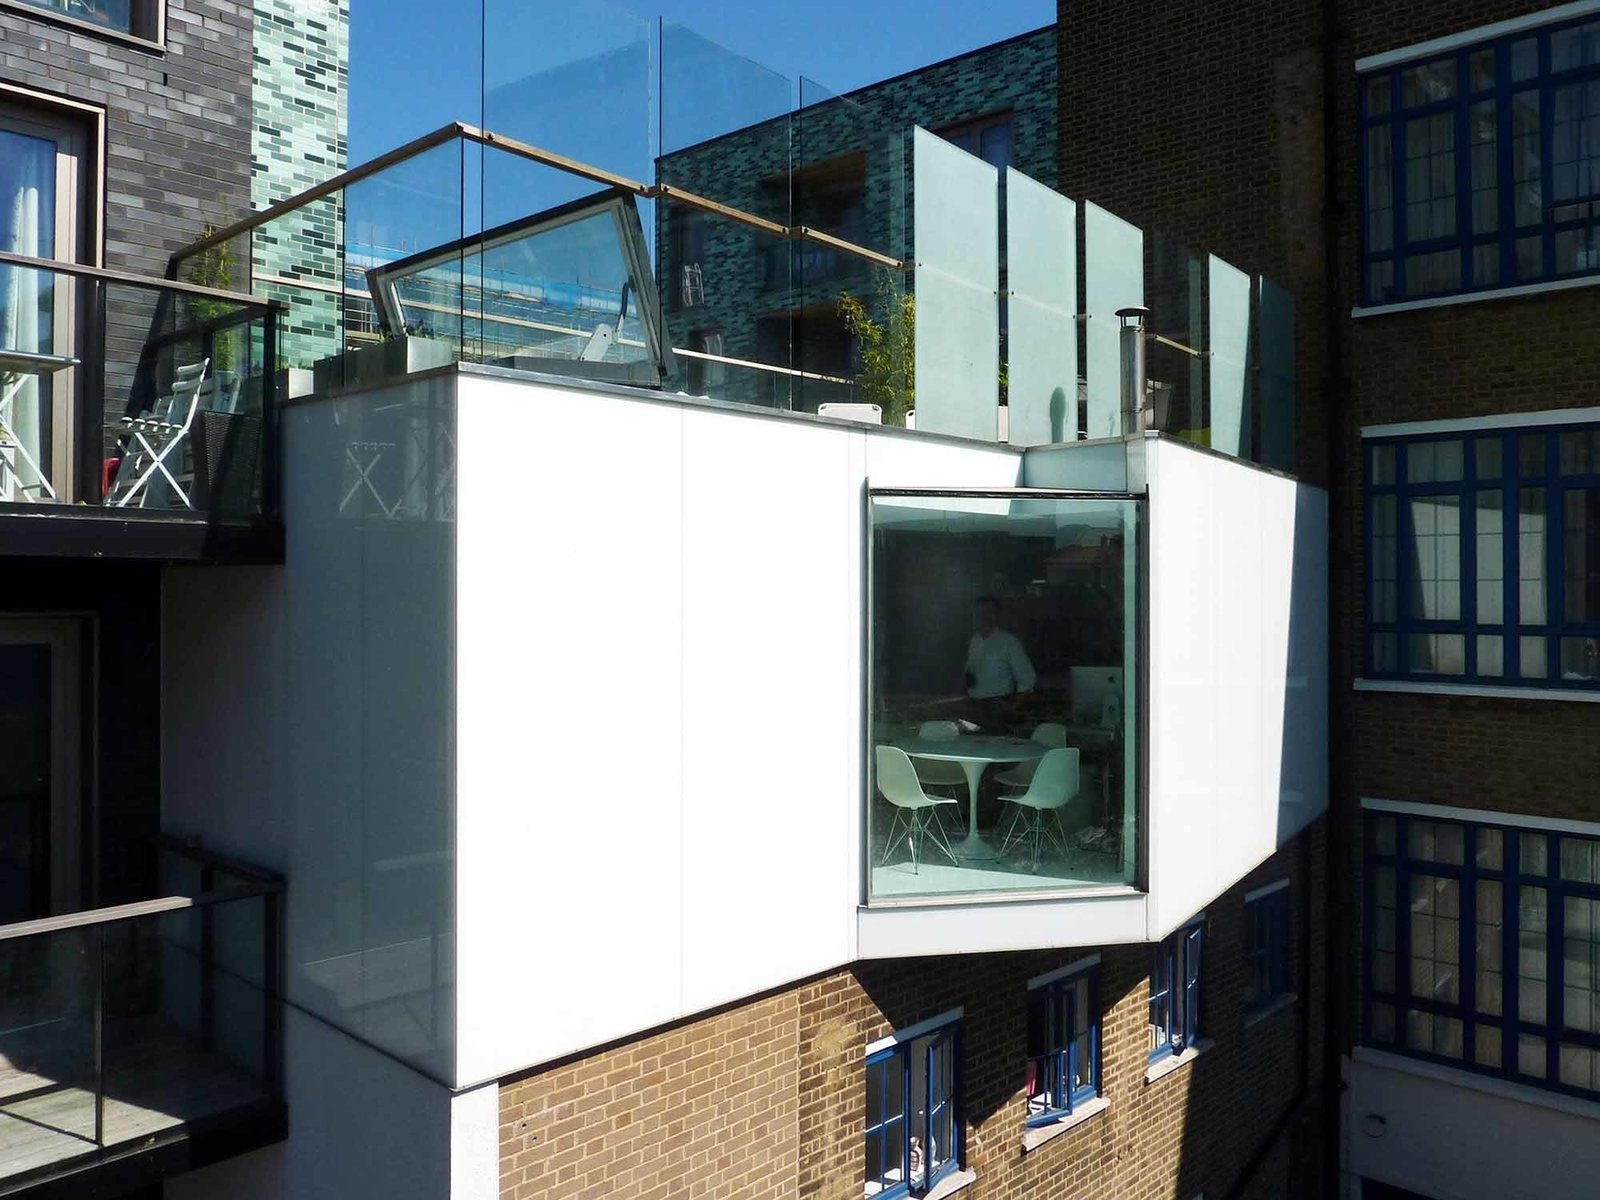 The expansion is lightweight timber construction clad in glass with a stainless steel trim, producing a glossy, reflective veneer. The full-height structural glass wraps overhead to capture more light. The roof terrace, with a balustrade and partial privacy screening, is accessible by a hydraulic roof hatch.  Photo 1 of 7 in A Tiny Live/Work Addition Crowns a Historic London House